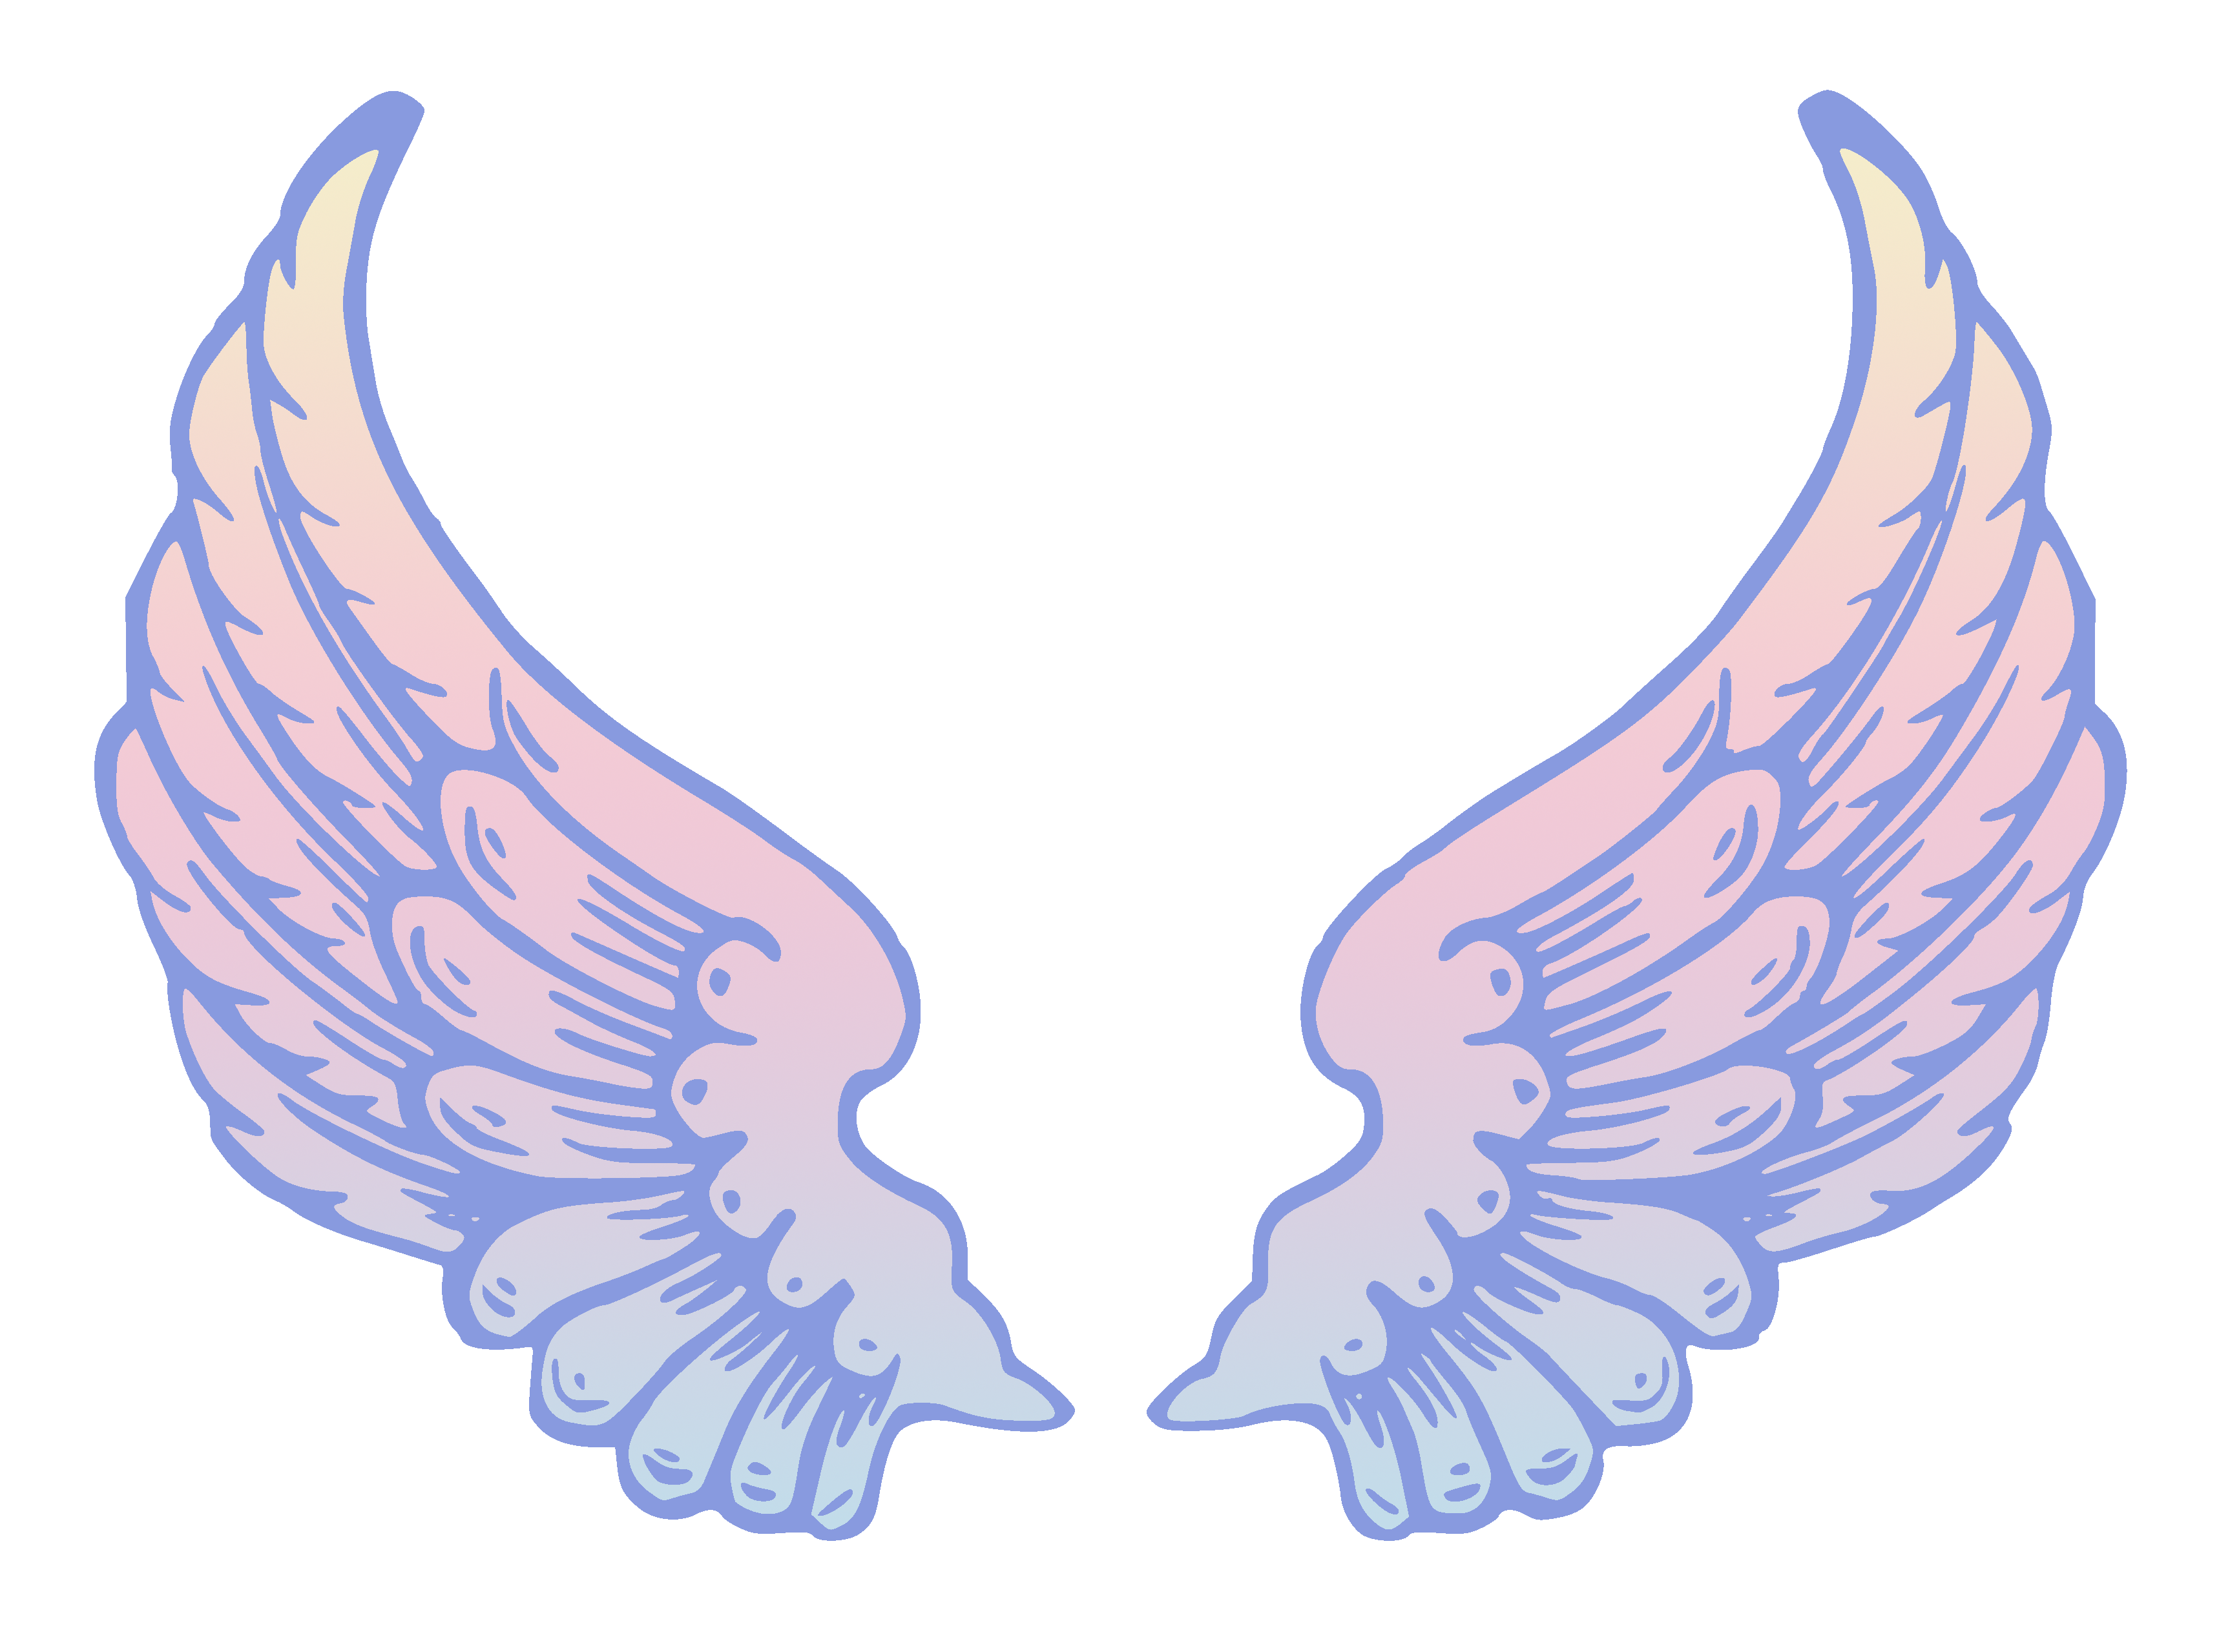 Angel wings vector png. Public domain pastel free